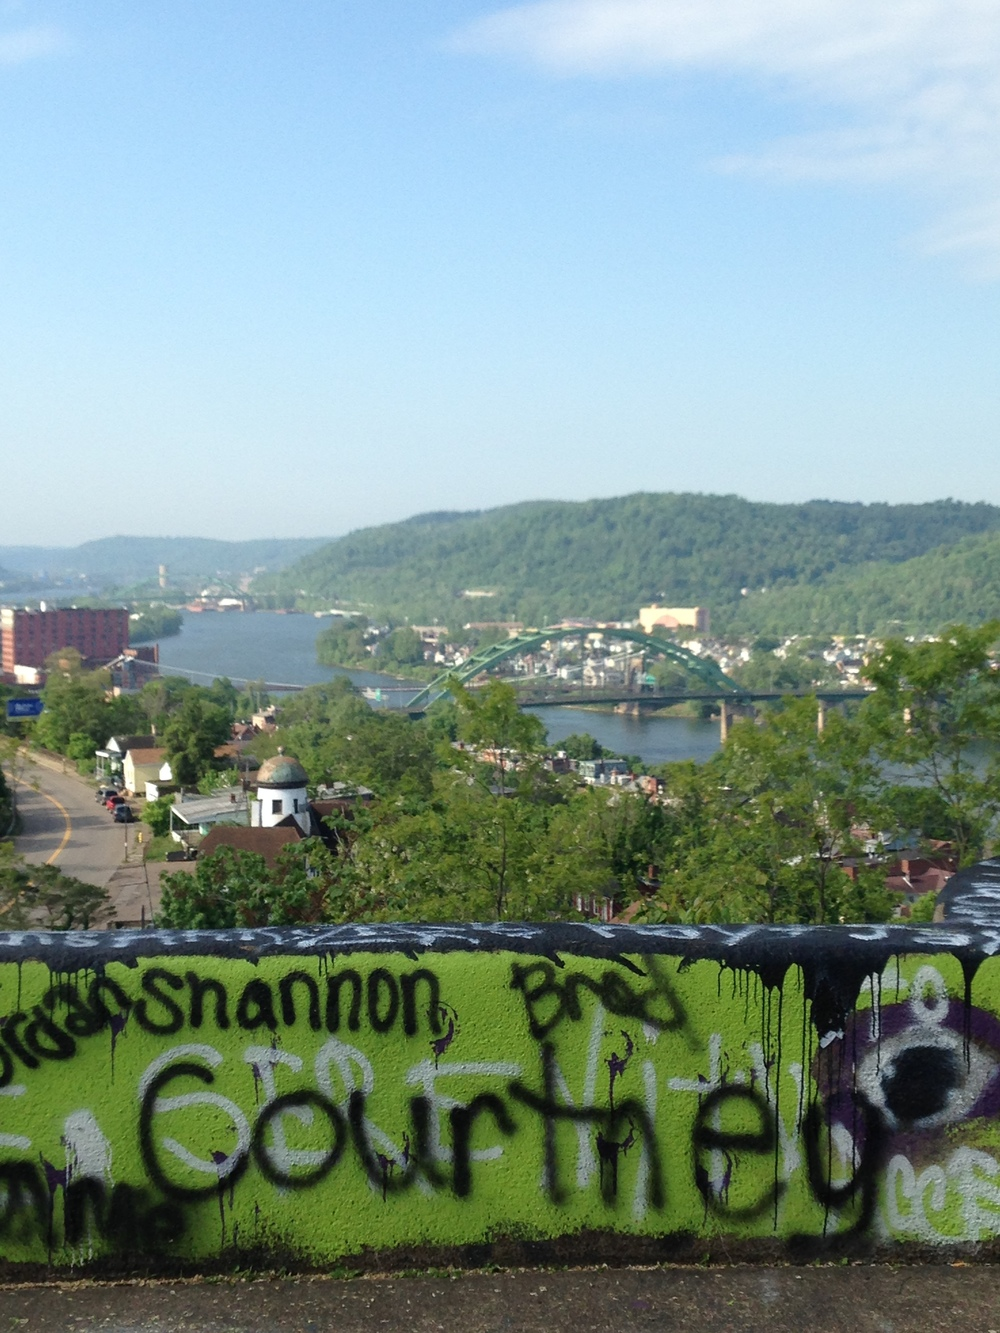 Graffiti at the Mt. Wood Overlook competes for attention with the commanding view of the Ohio Valley.